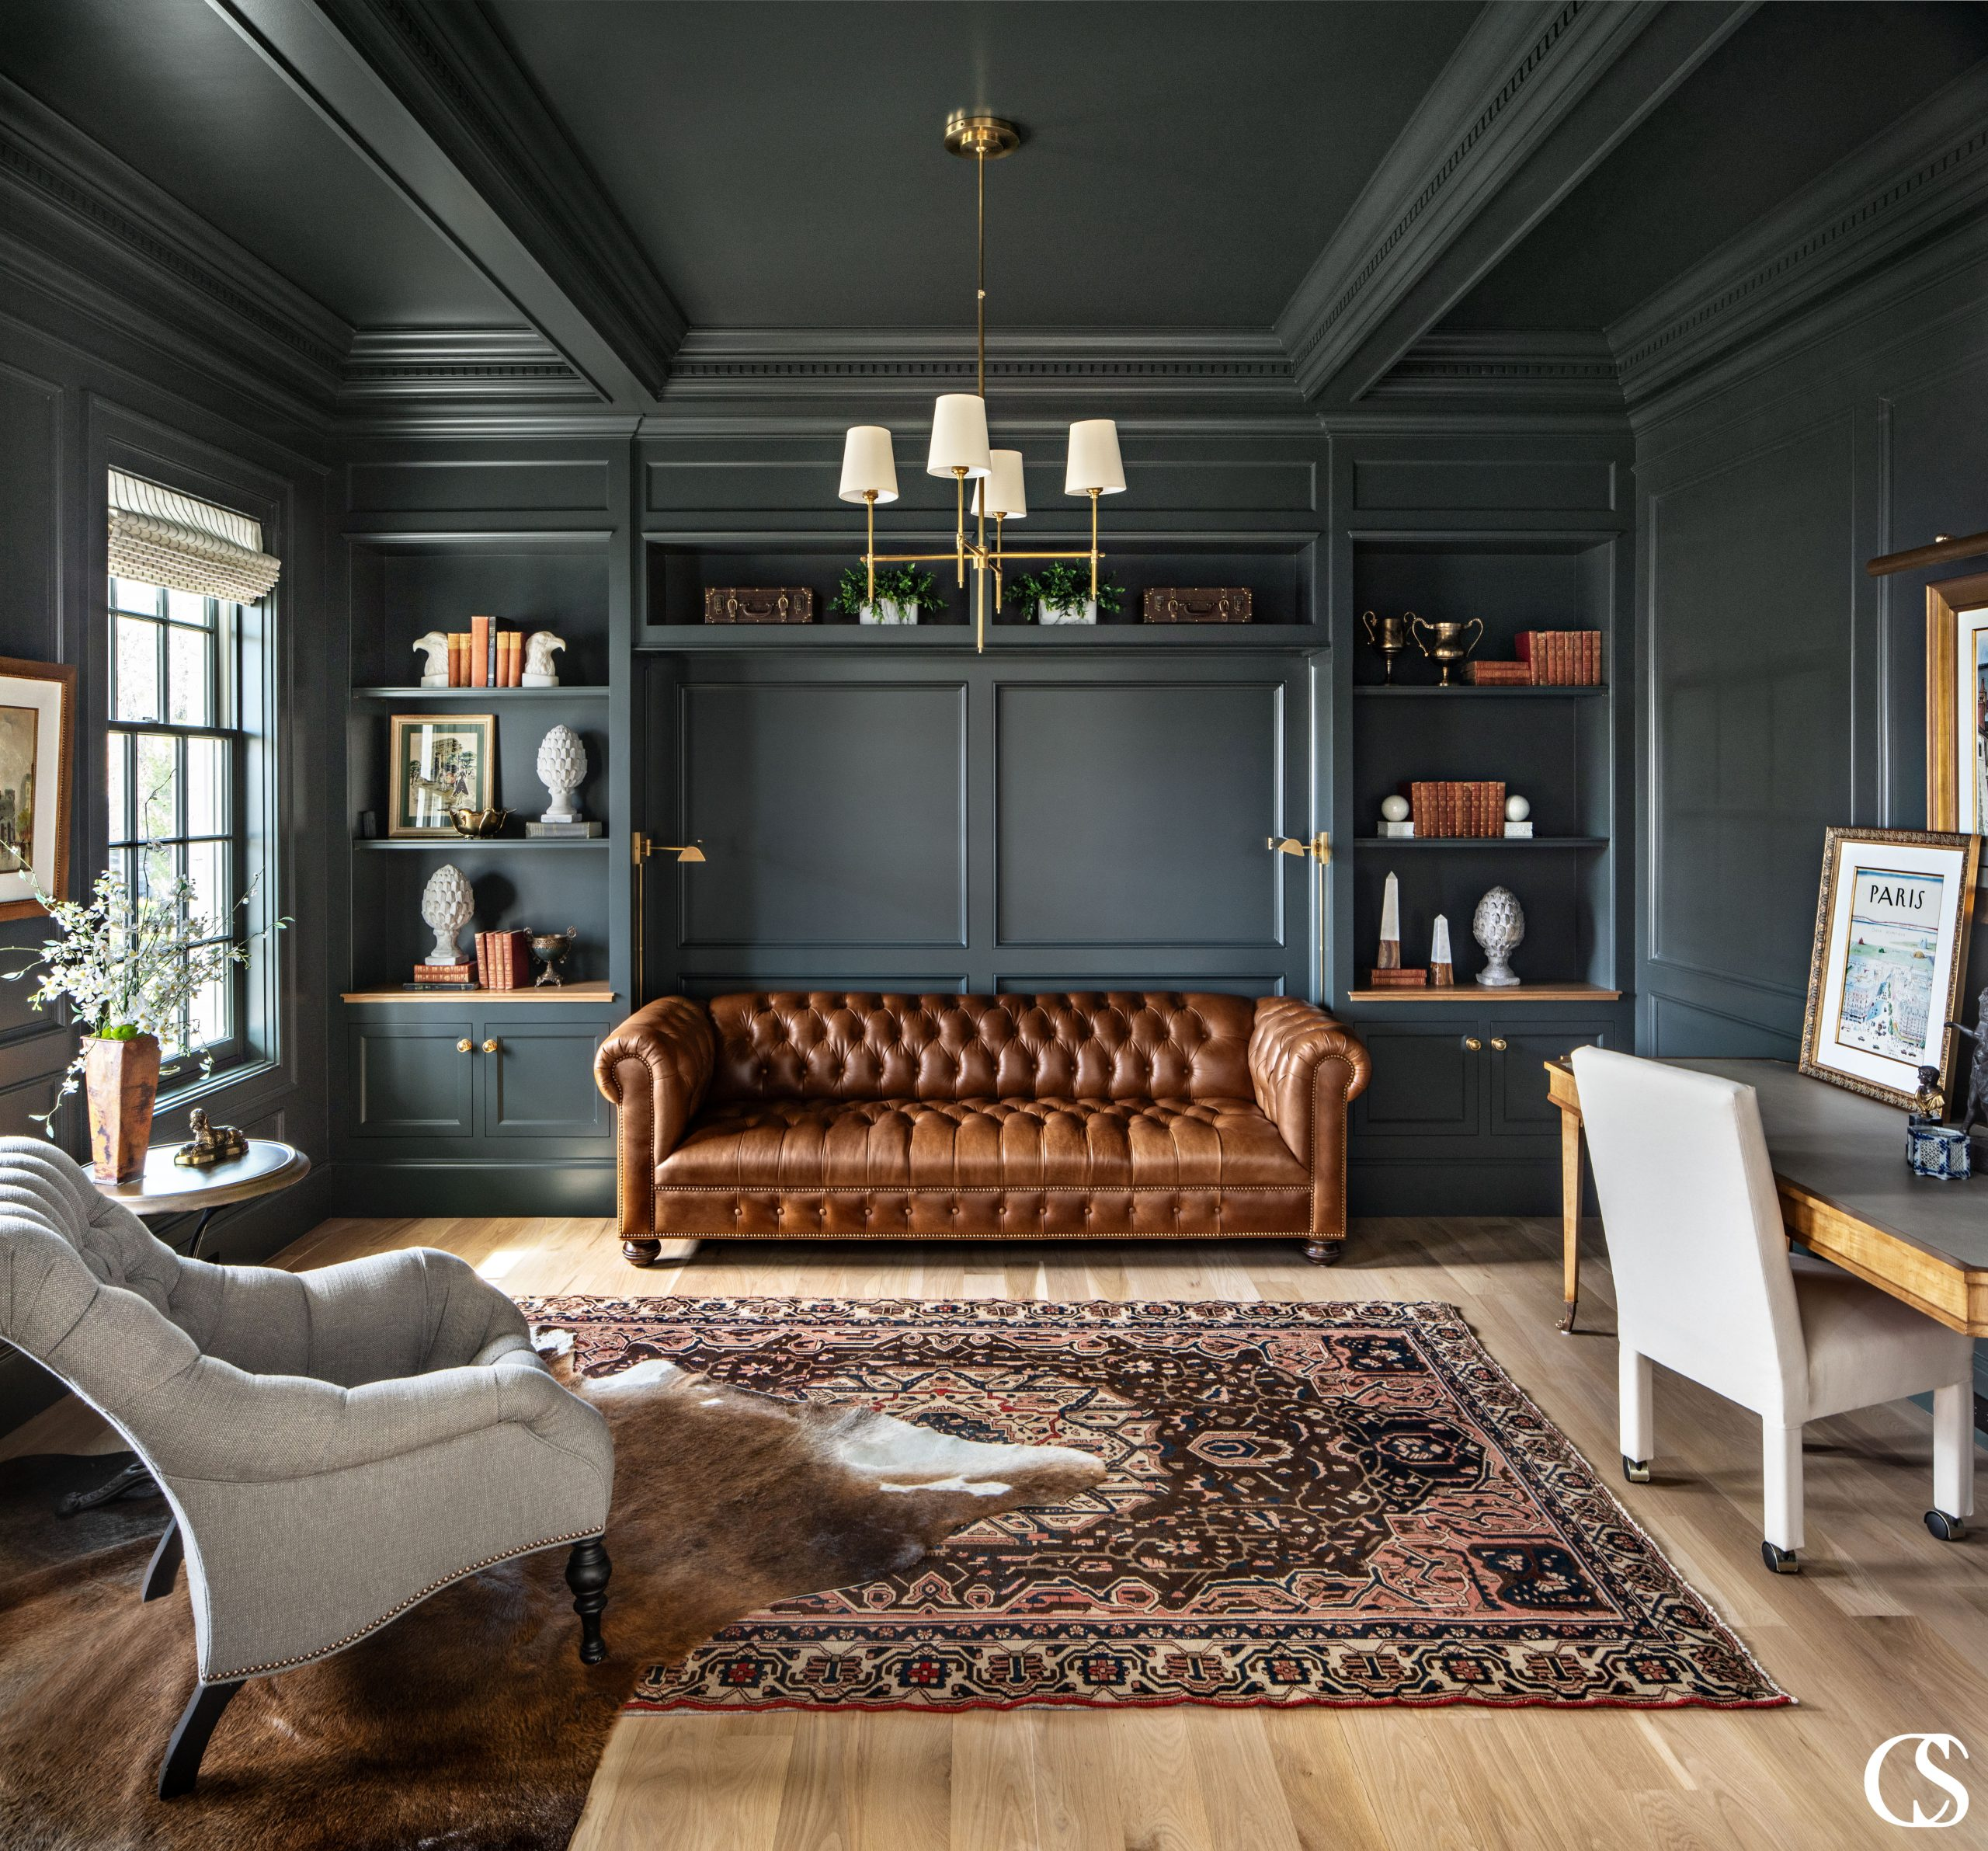 There should be no questioning why this is one of our favorite green paint colors. It's deep, moody, and adds just the right amount of earthiness for the leather and wood to pop off in this custom home office.